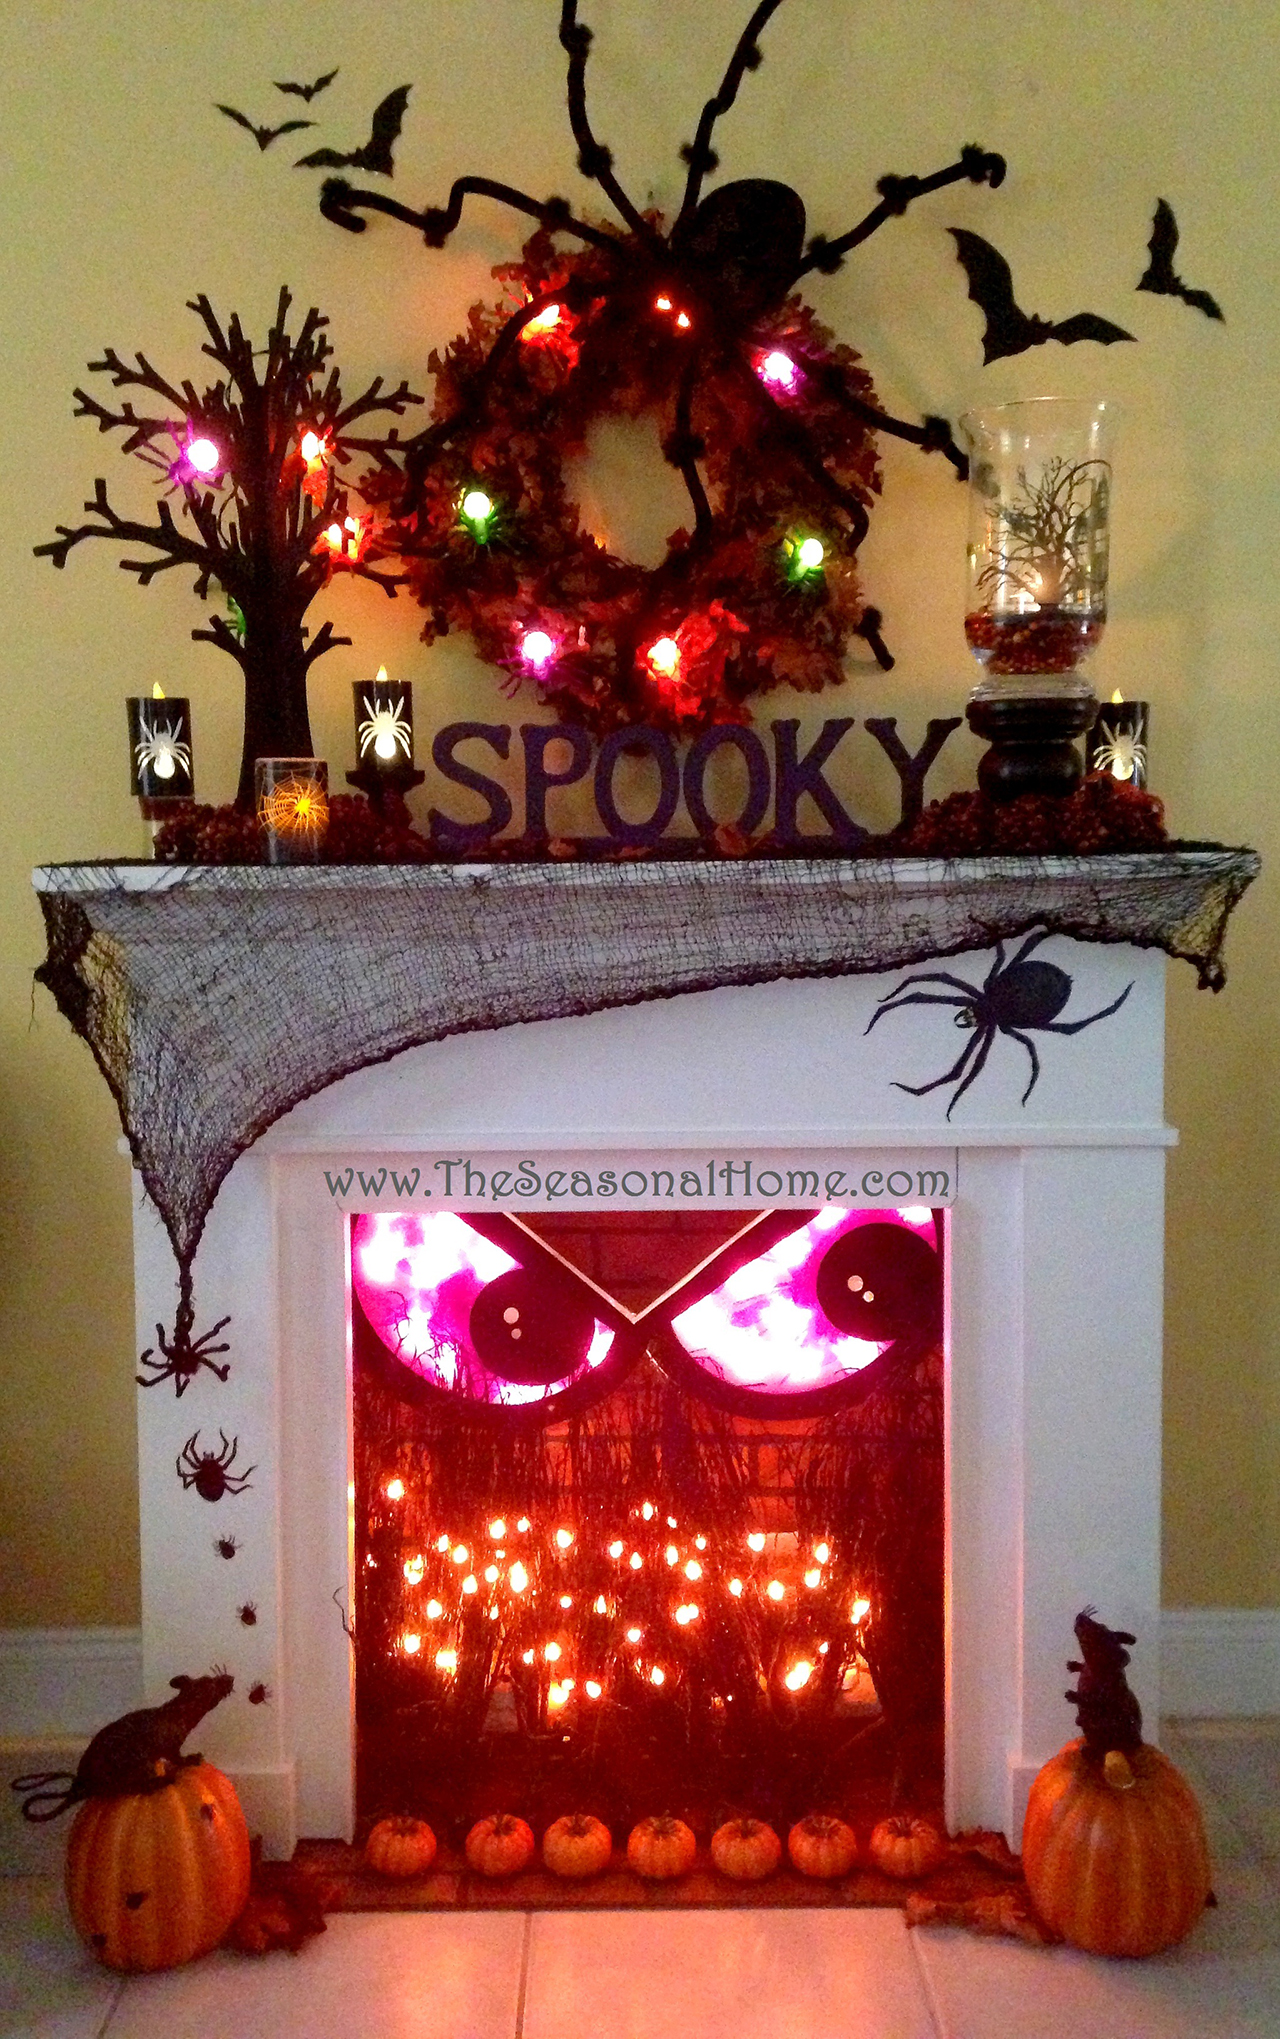 2 spooky fireplace crackles with fun